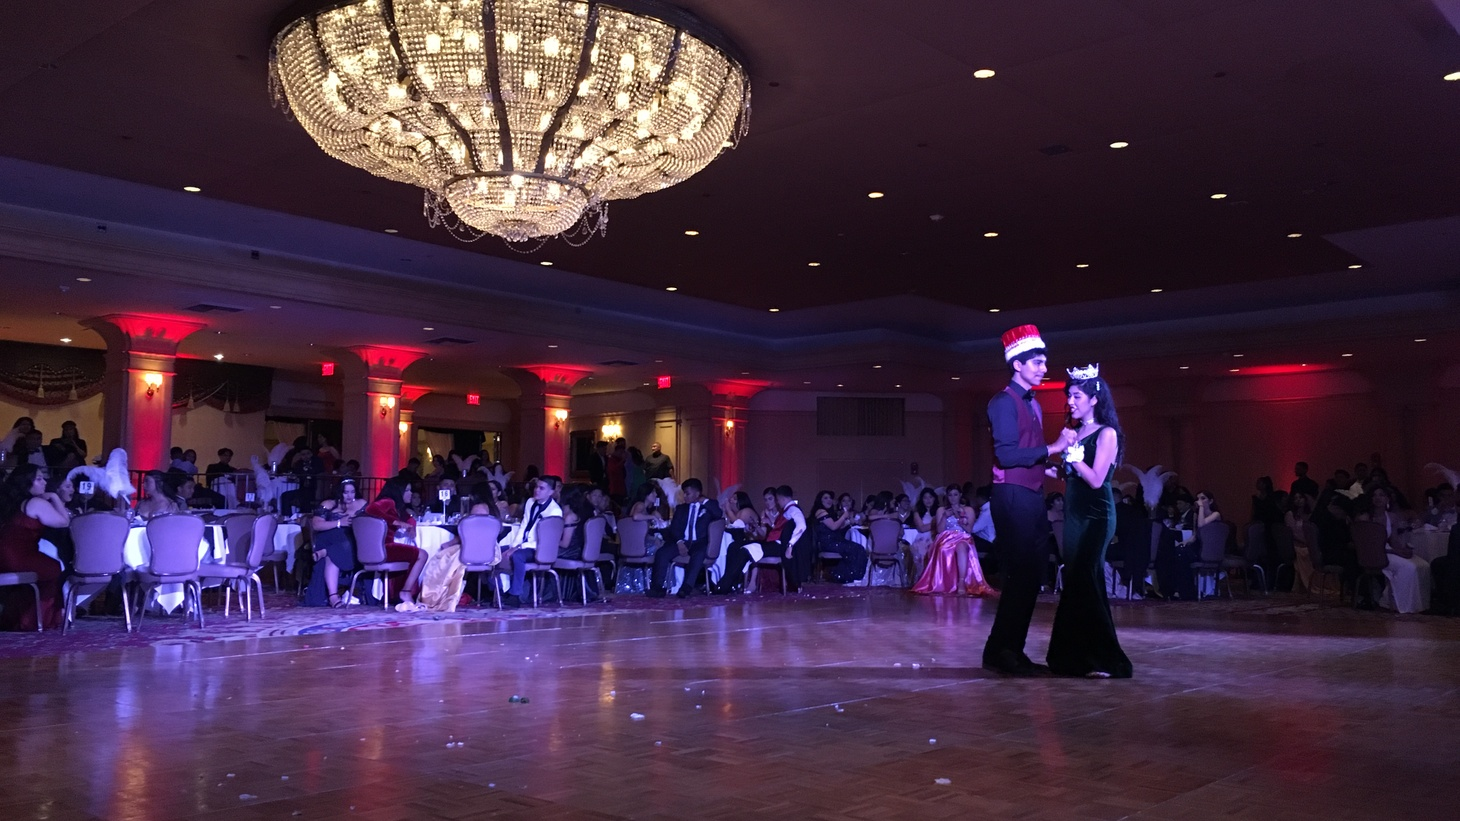 The Roosevelt High School prom king and queen dance at prom.